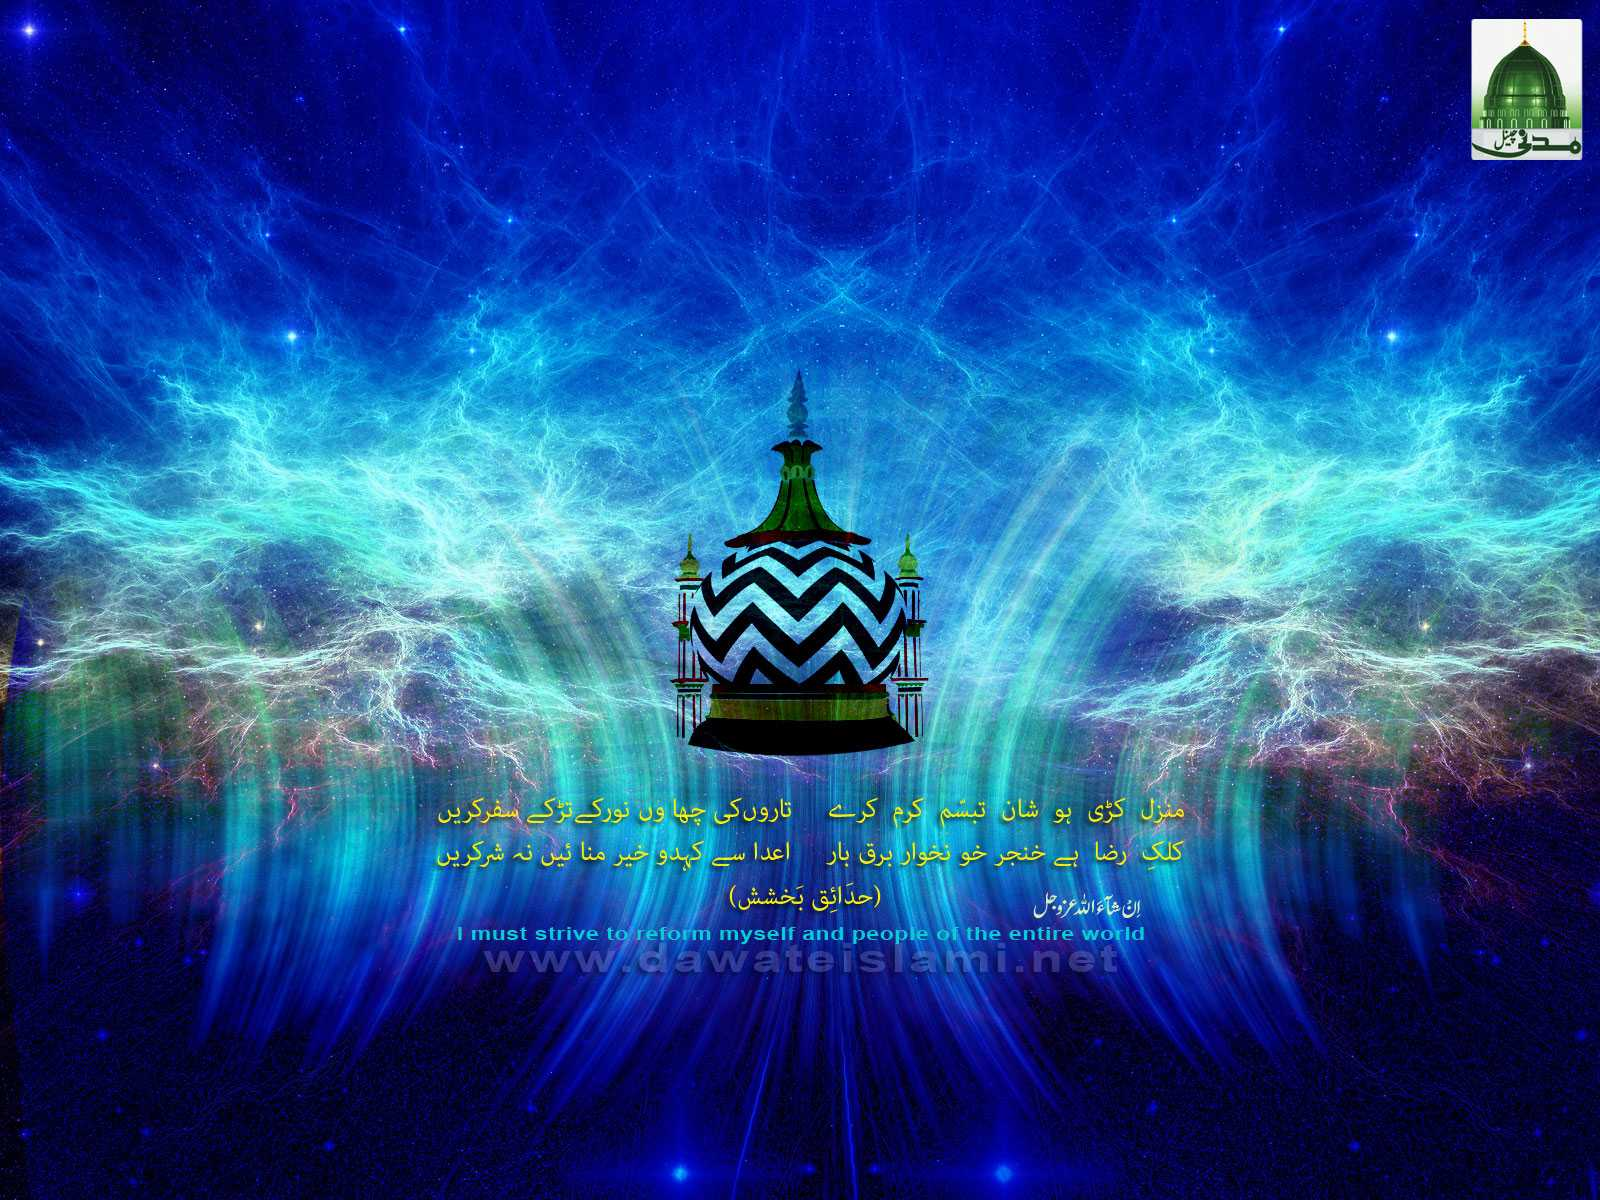 1295374494 alaHazrat wallpapers imam ahmad raza khan barelvi hanafi sunni qadri islamic wallpaper 3.png Beautiful Islamic Wallpapers Download